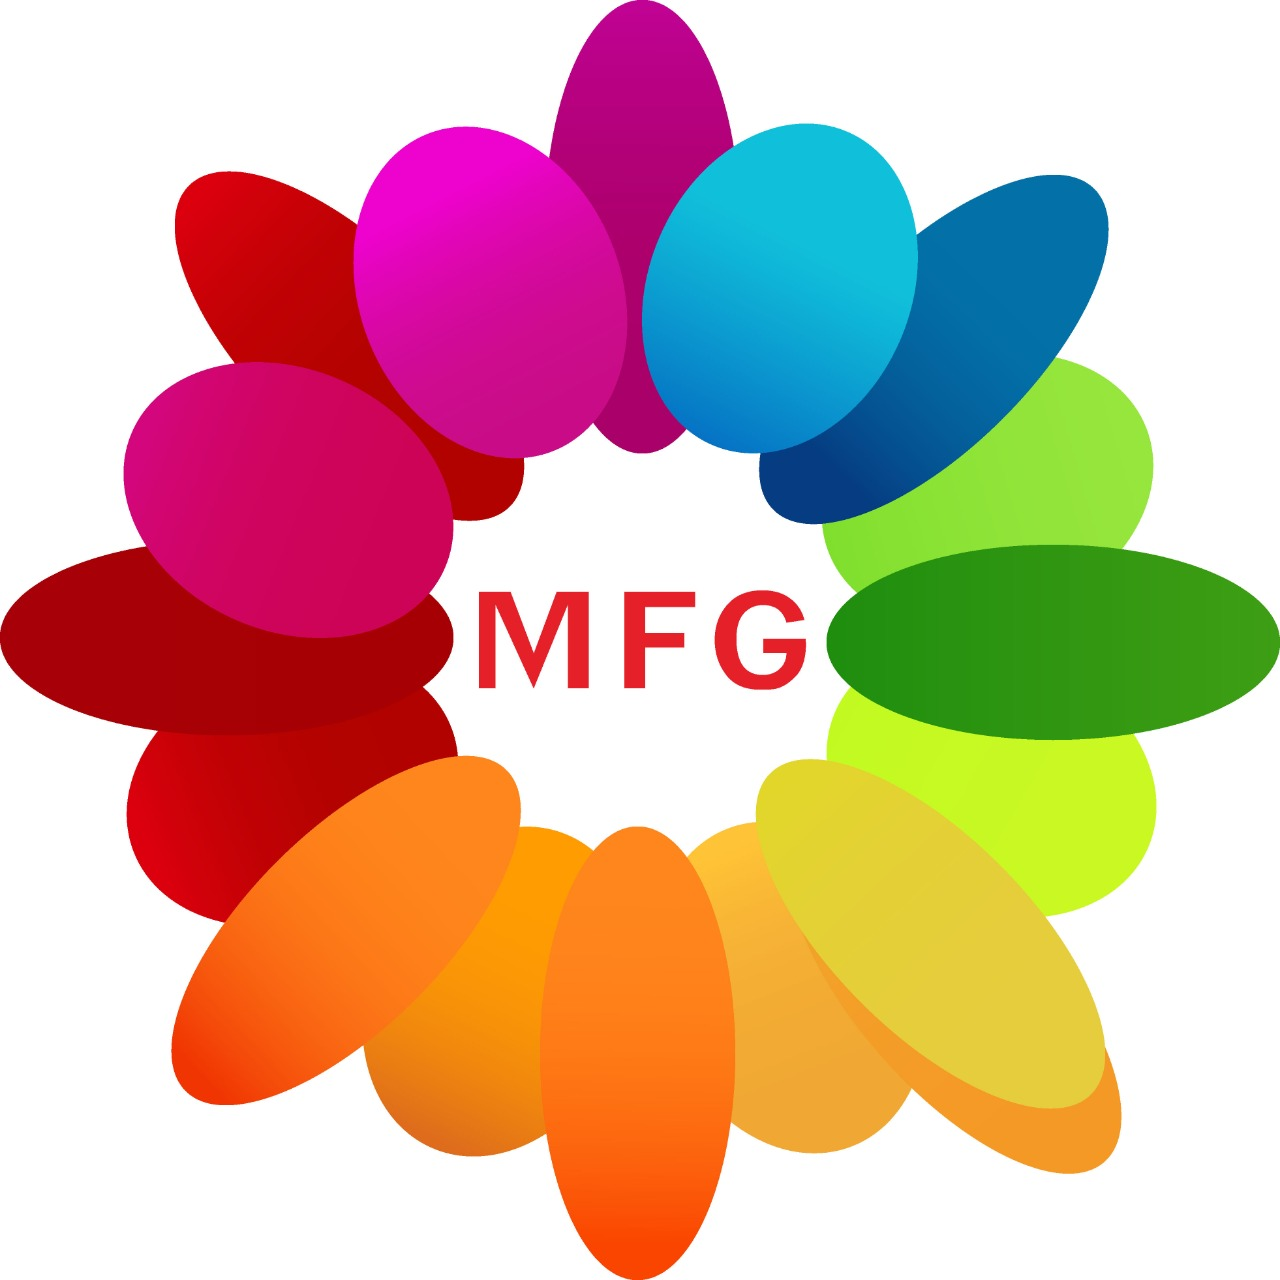 Death by chocolate 1 kg fresh cream cake(Eggless)